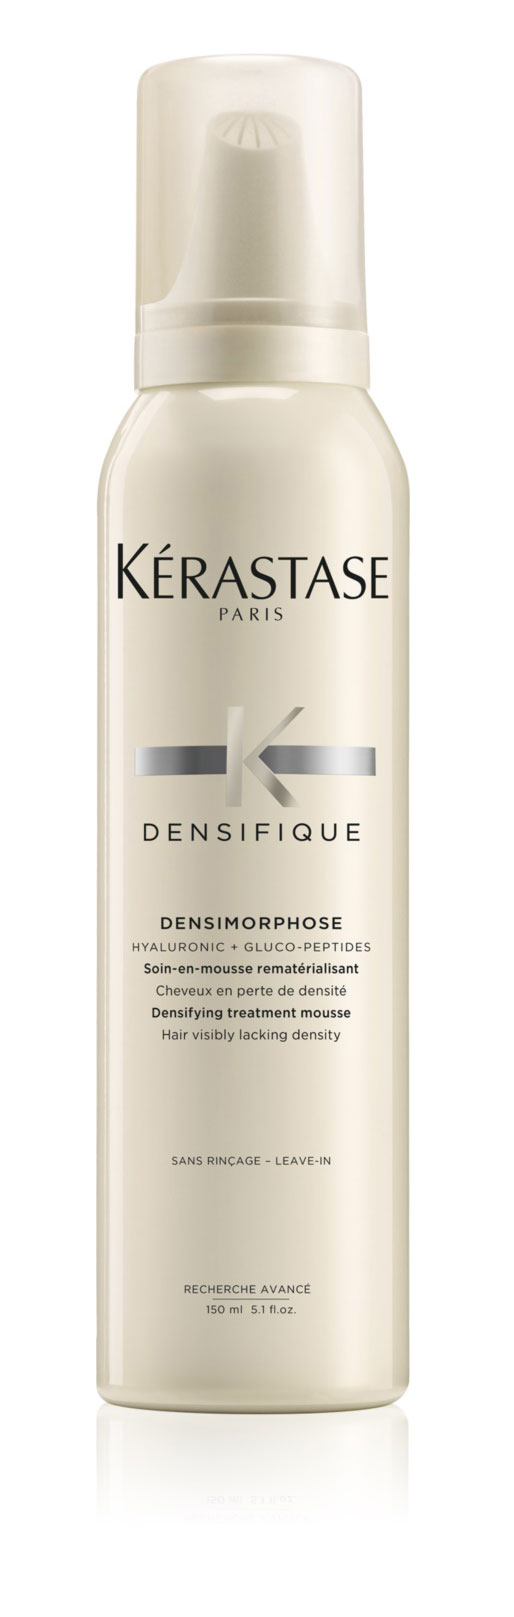 Kérastase Mousse Densimorphose 150 ml